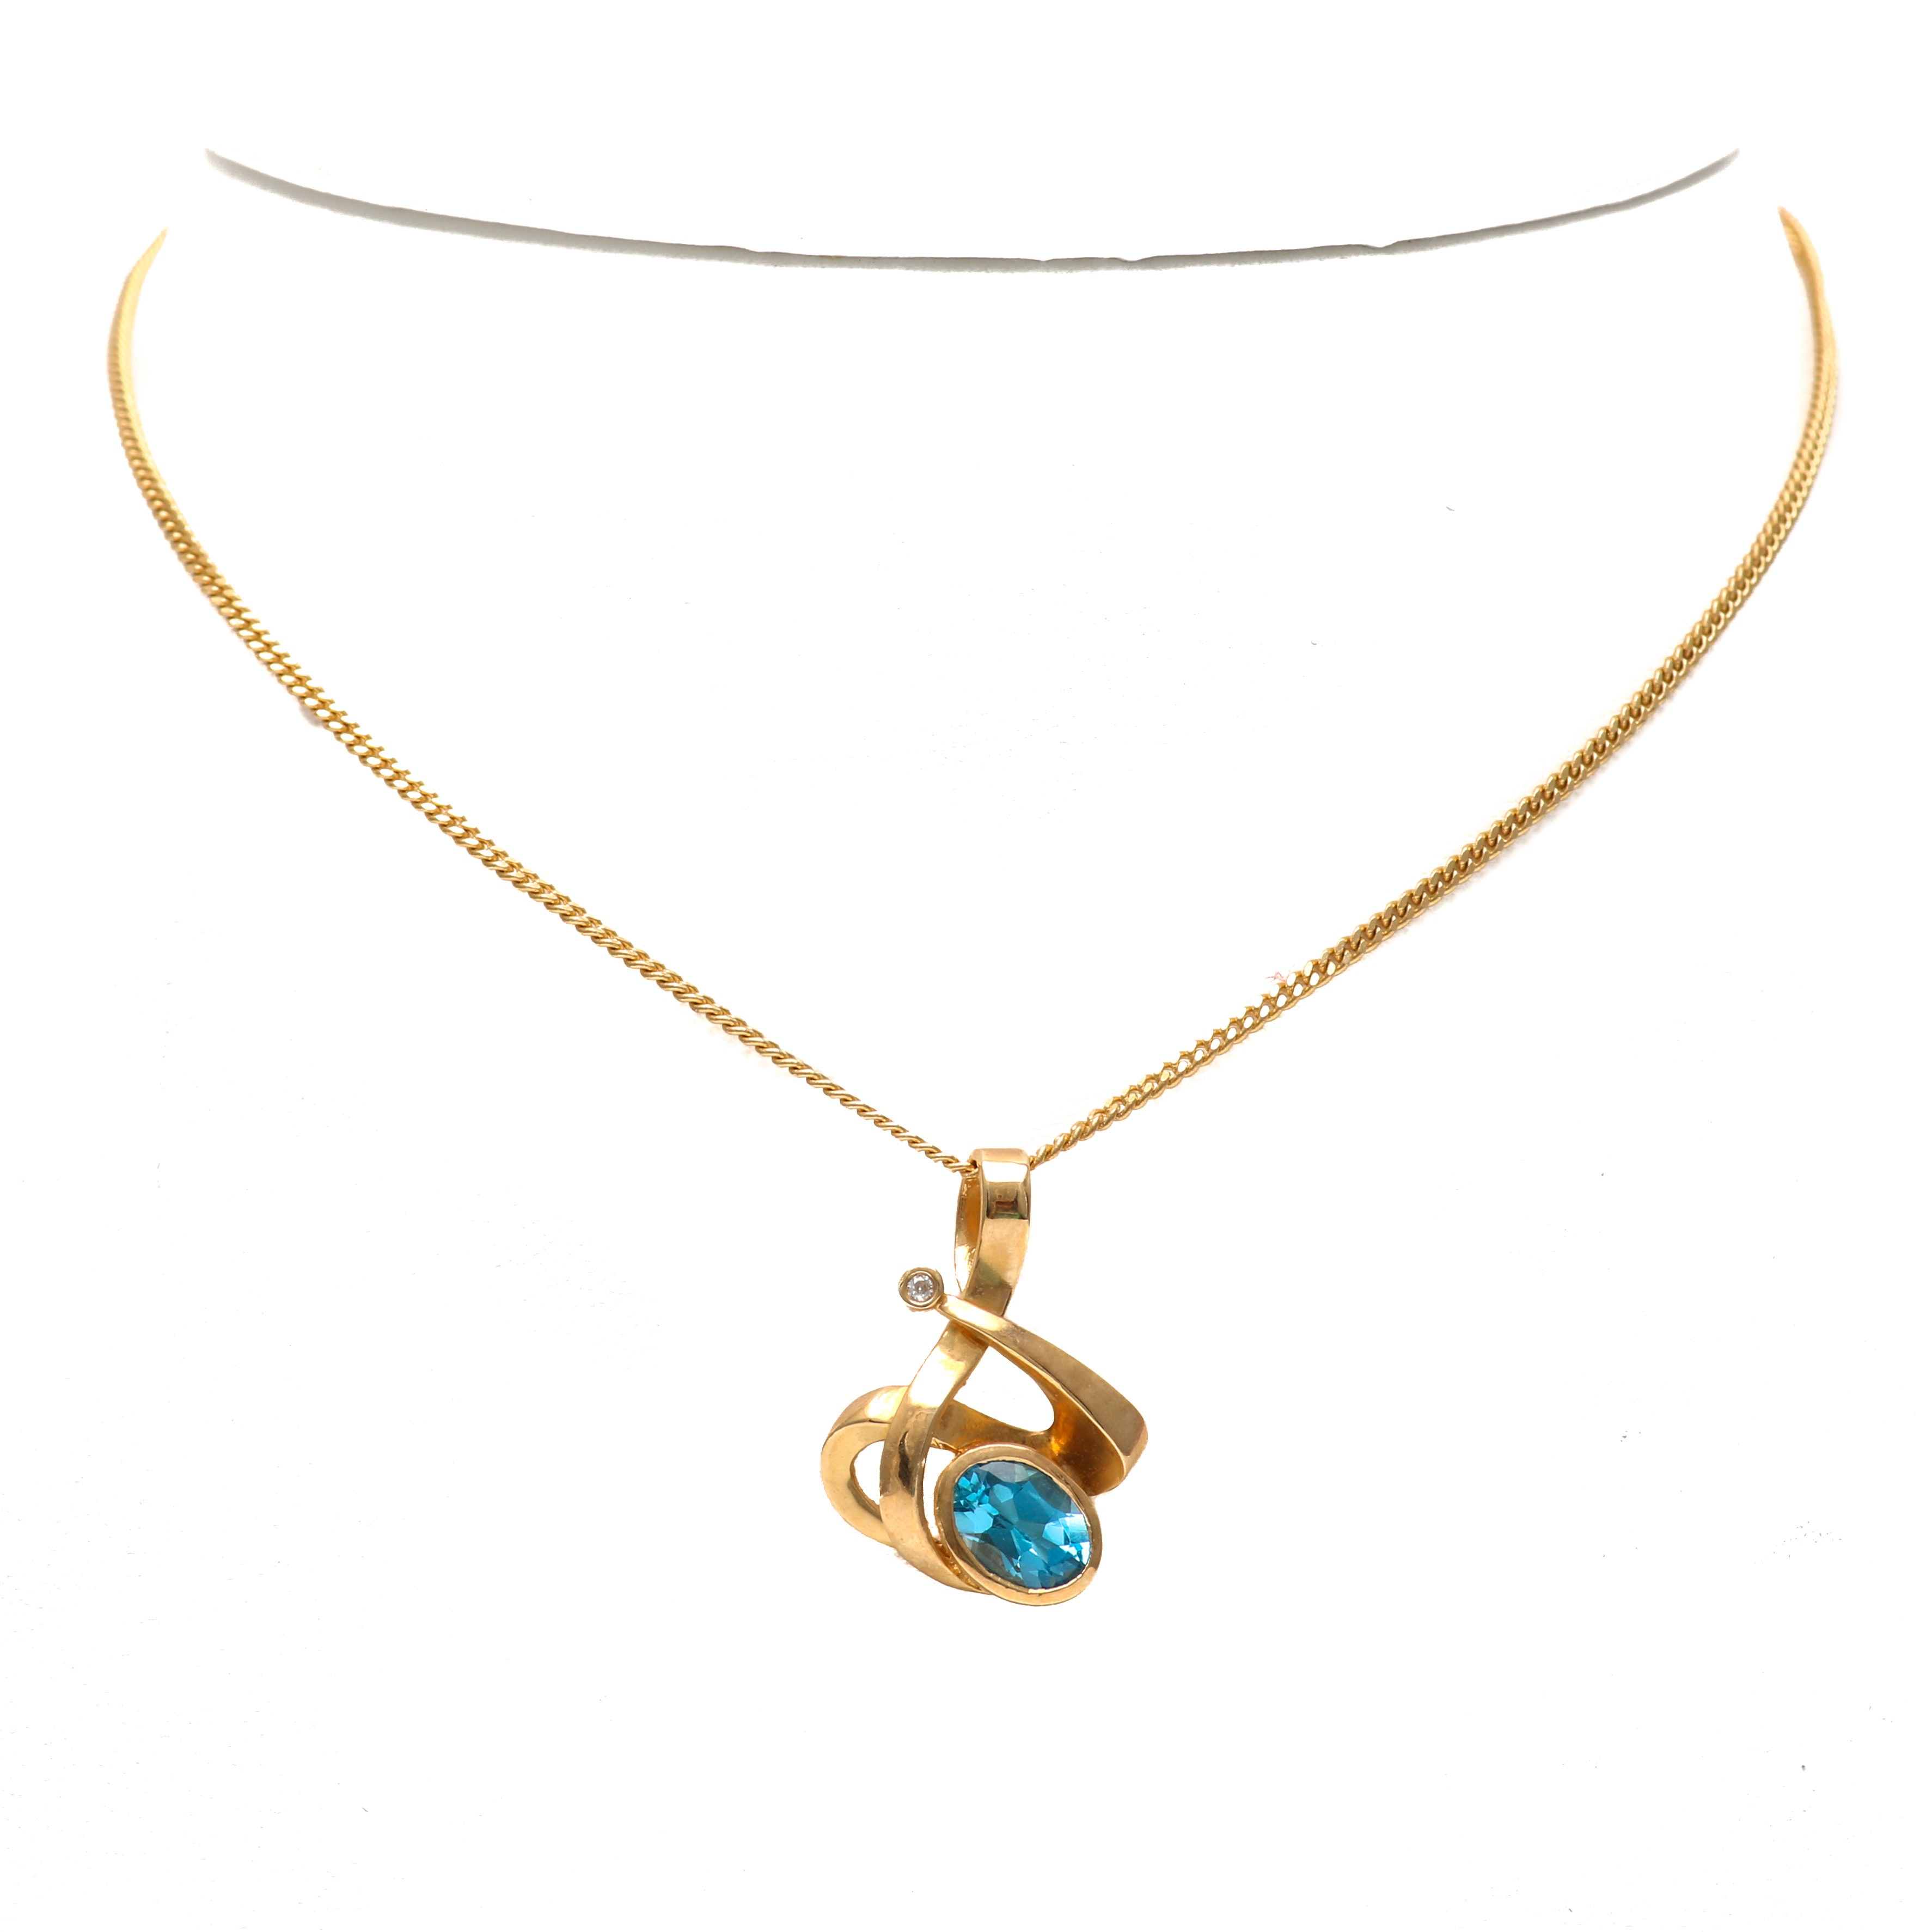 14K Yellow Gold Blue Topaz and Diamond Pendant Necklace